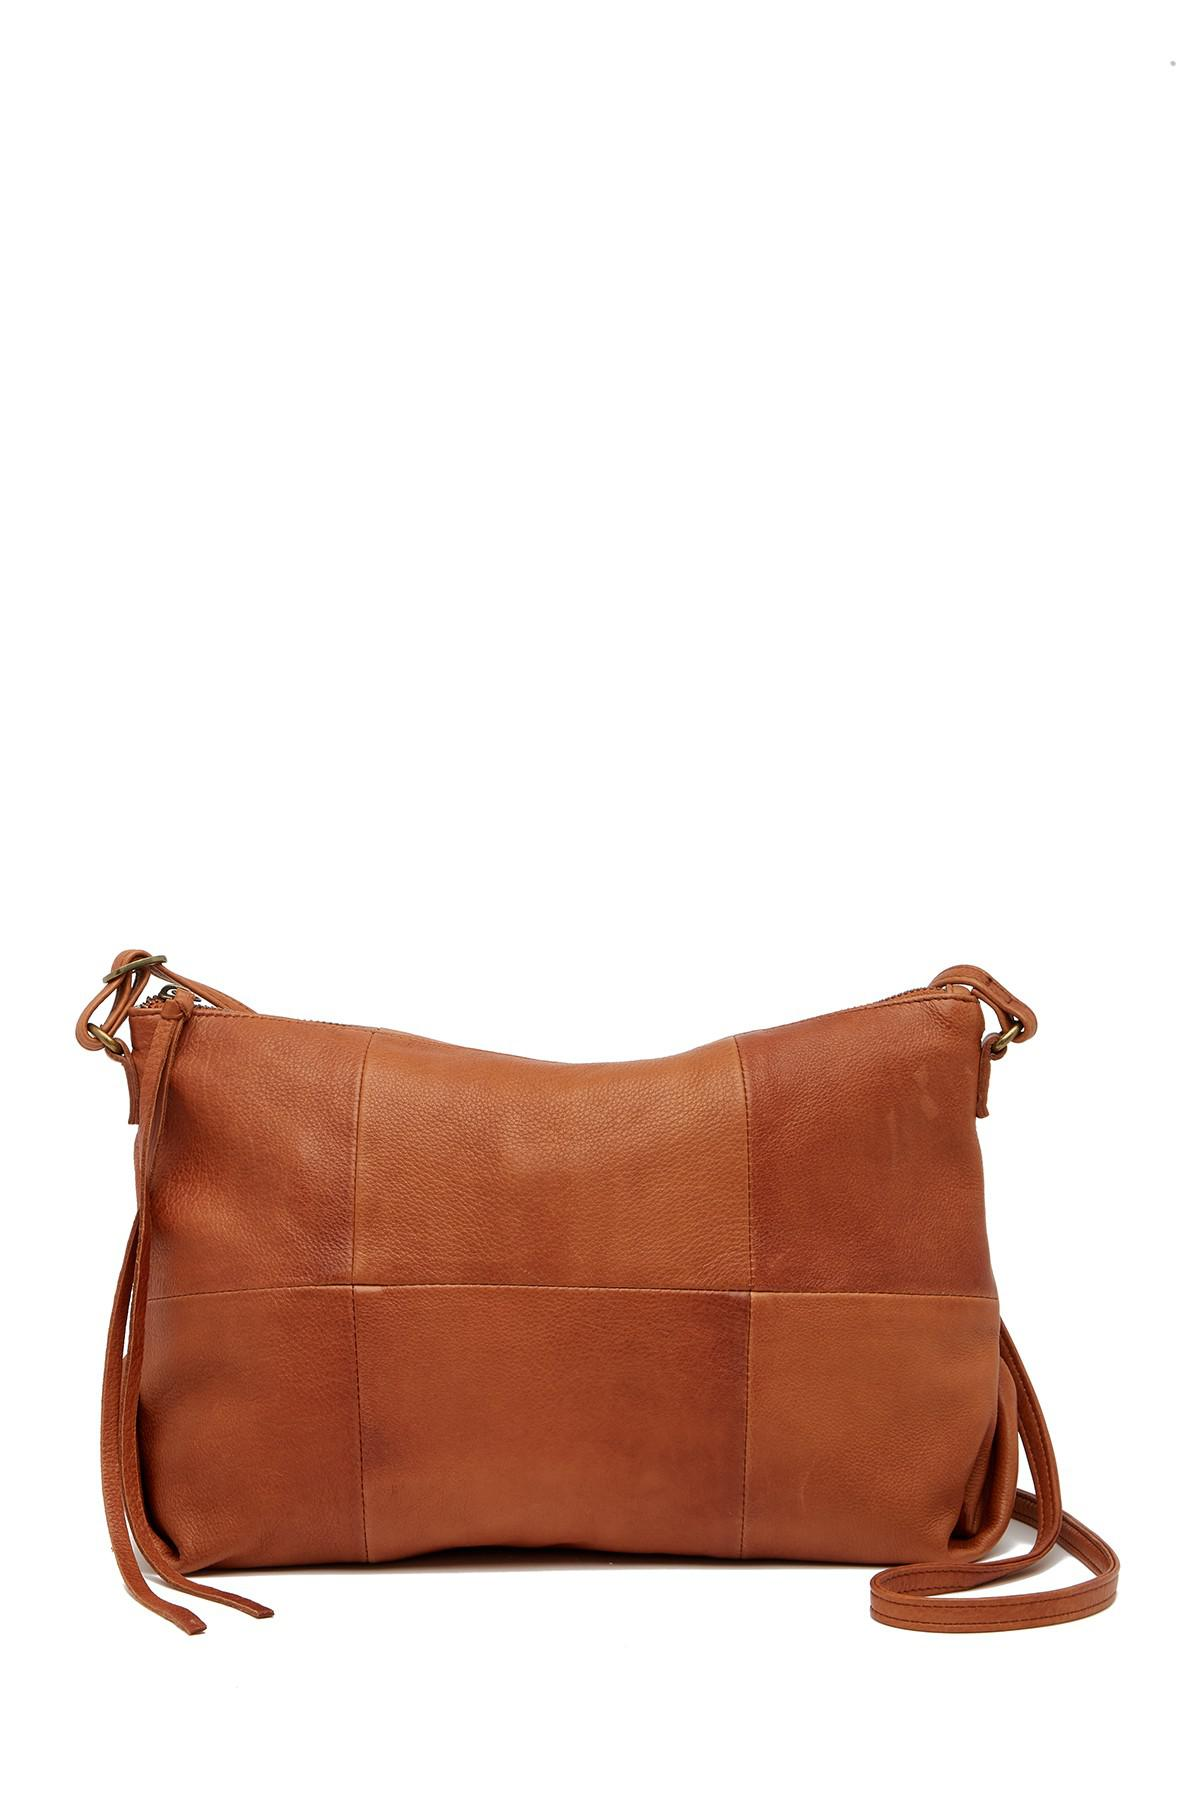 c191e647e Day & Mood Molly Leather Crossbody Bag in Brown - Lyst